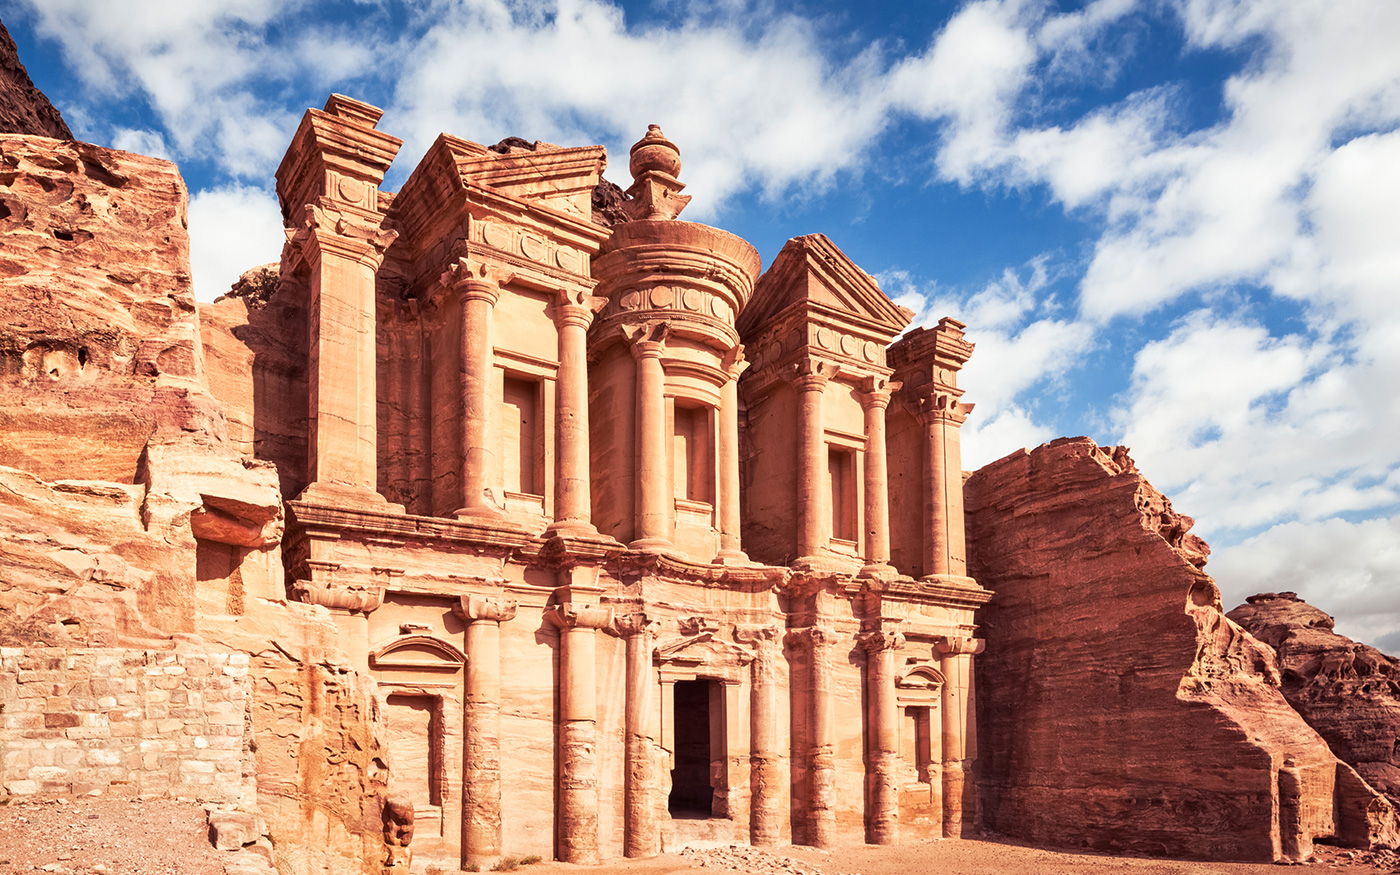 Facts About Petra